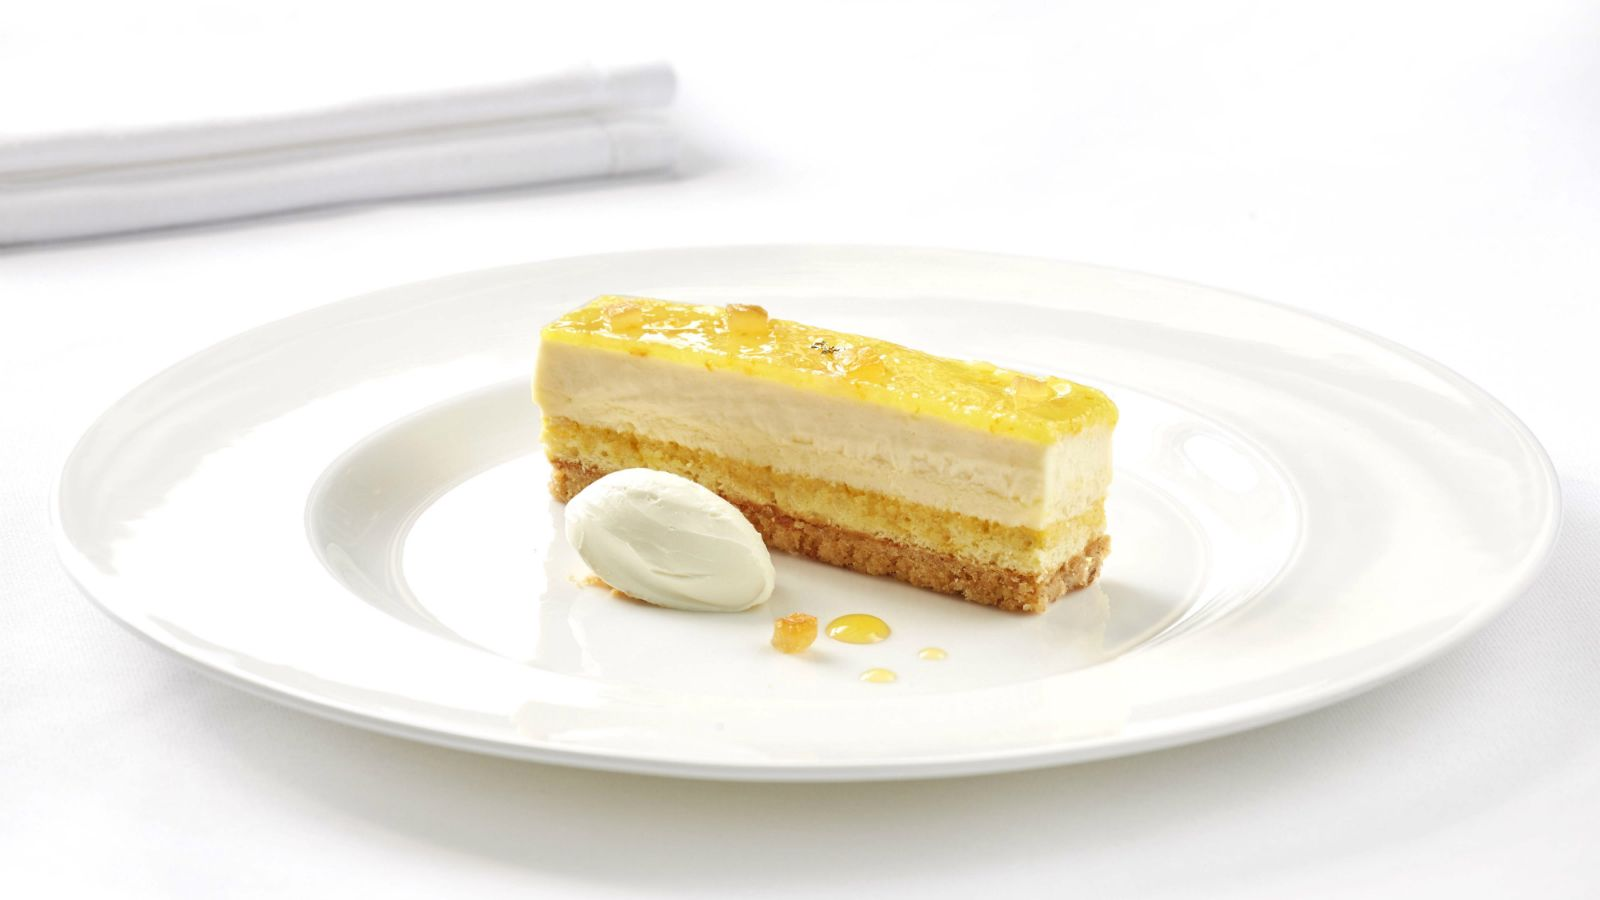 "Le cheese cake ""agrumes passion"" dessert by Arnaud Larher for Hotel Grande Bretagne Athens"